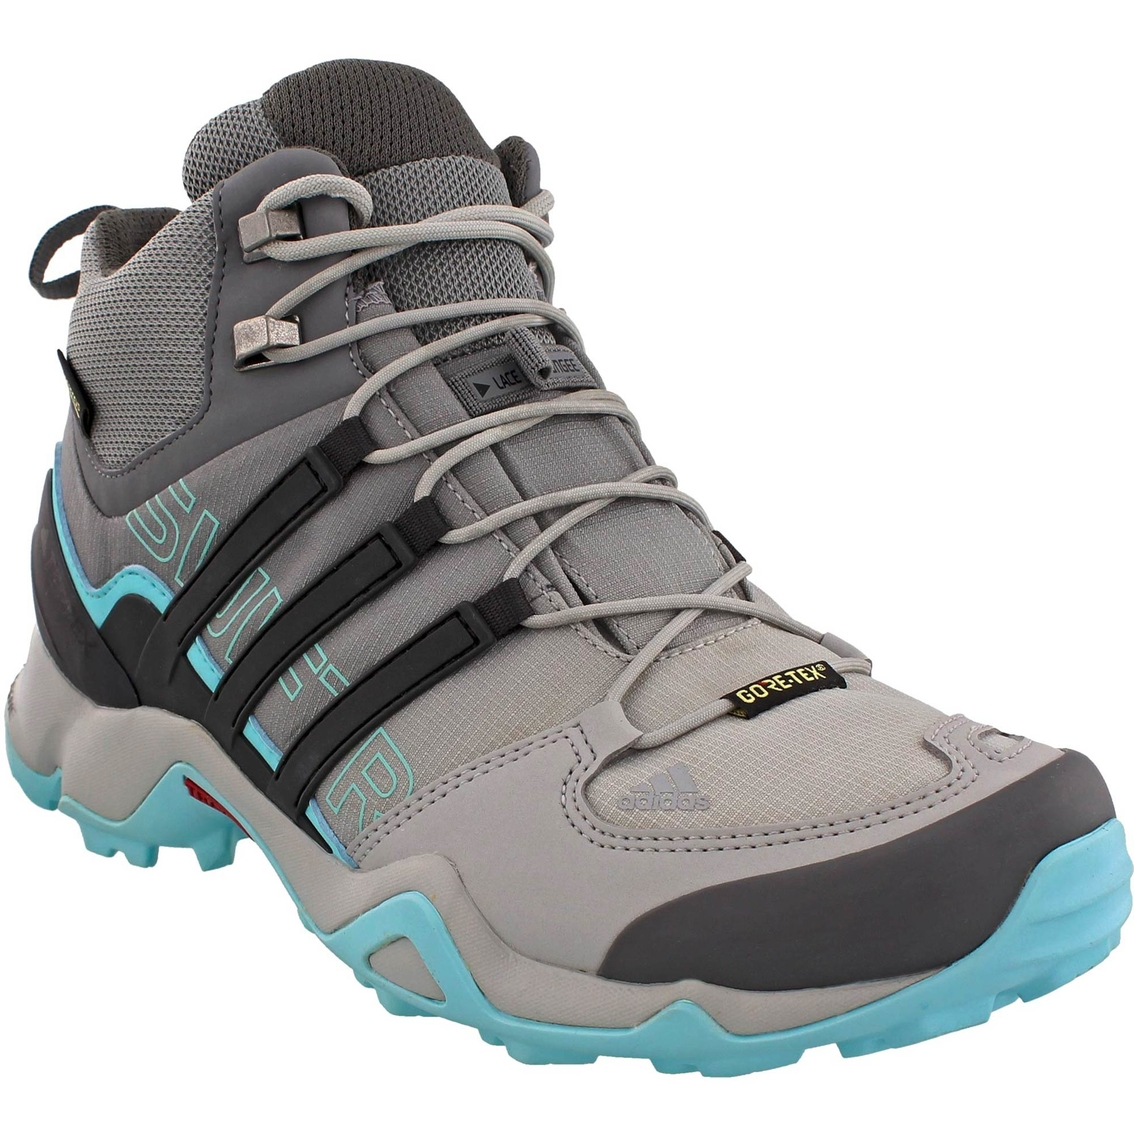 8583ae826 Adidas Outdoor Women s Terrex Swift R Mid Gtx Hiking Shoes